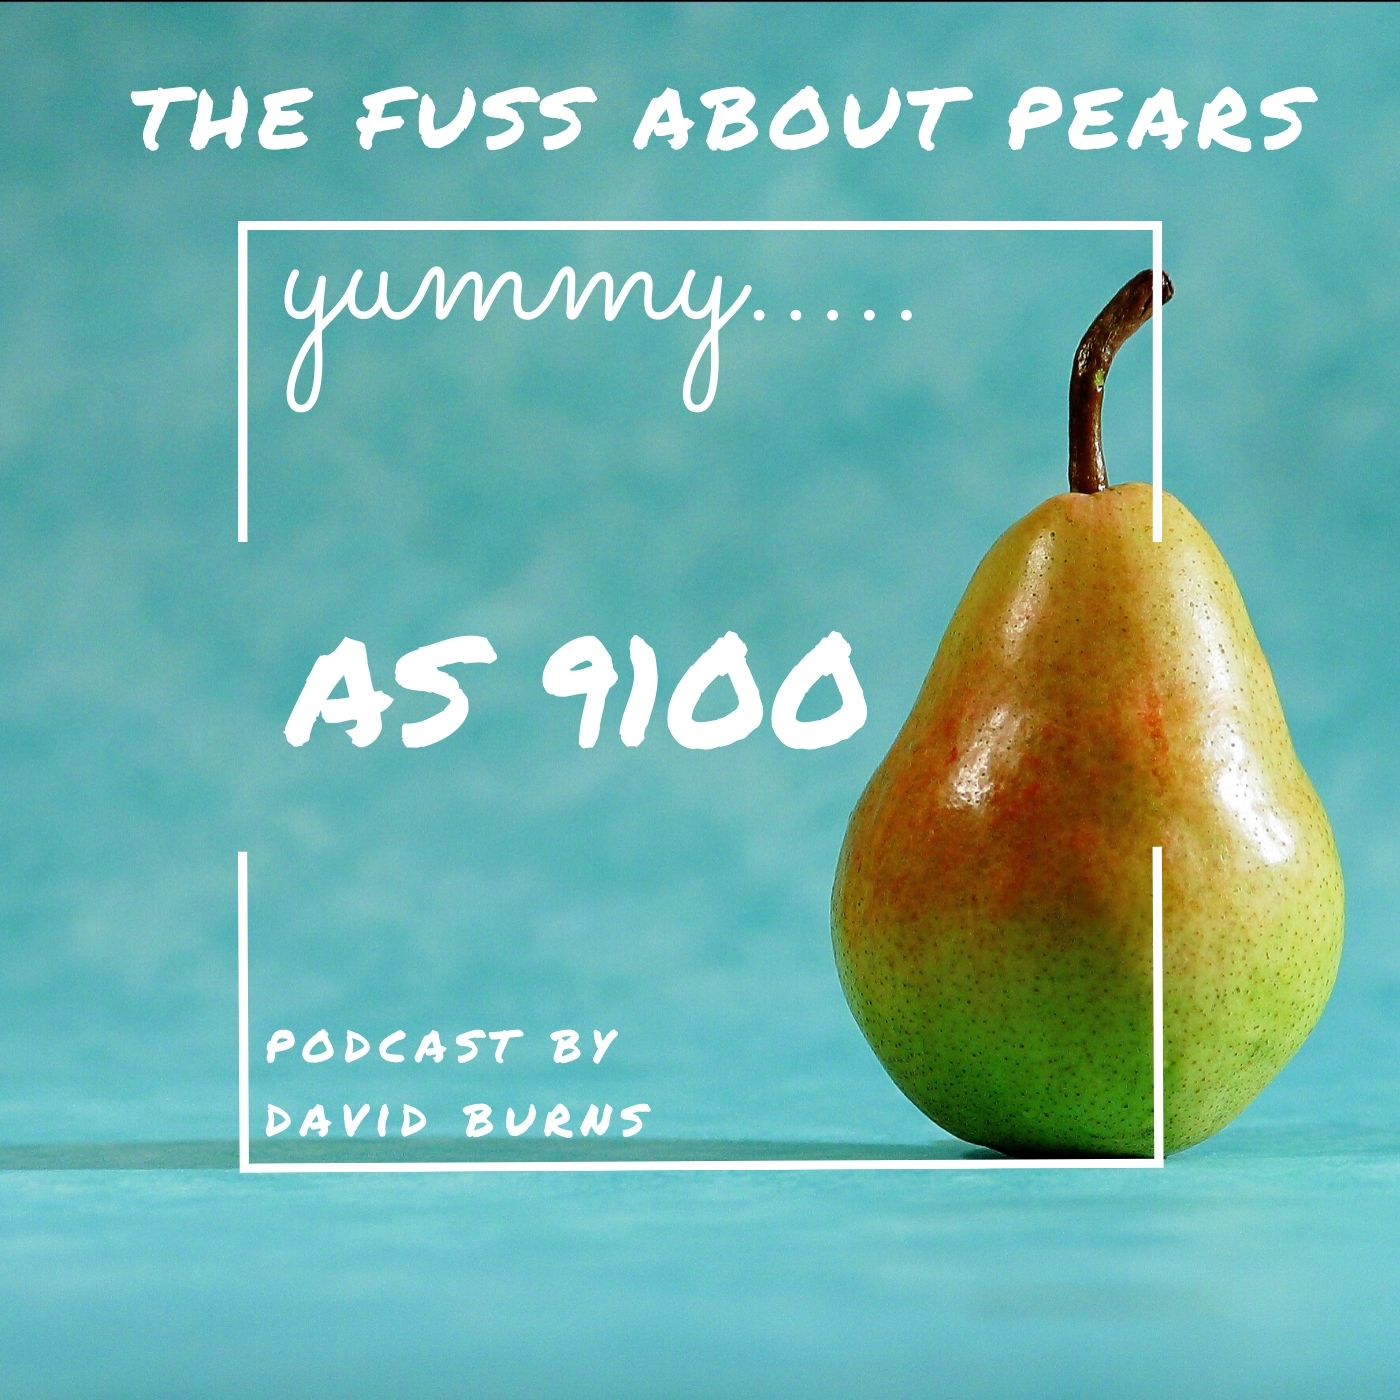 FUSS PEARS new cover podcast